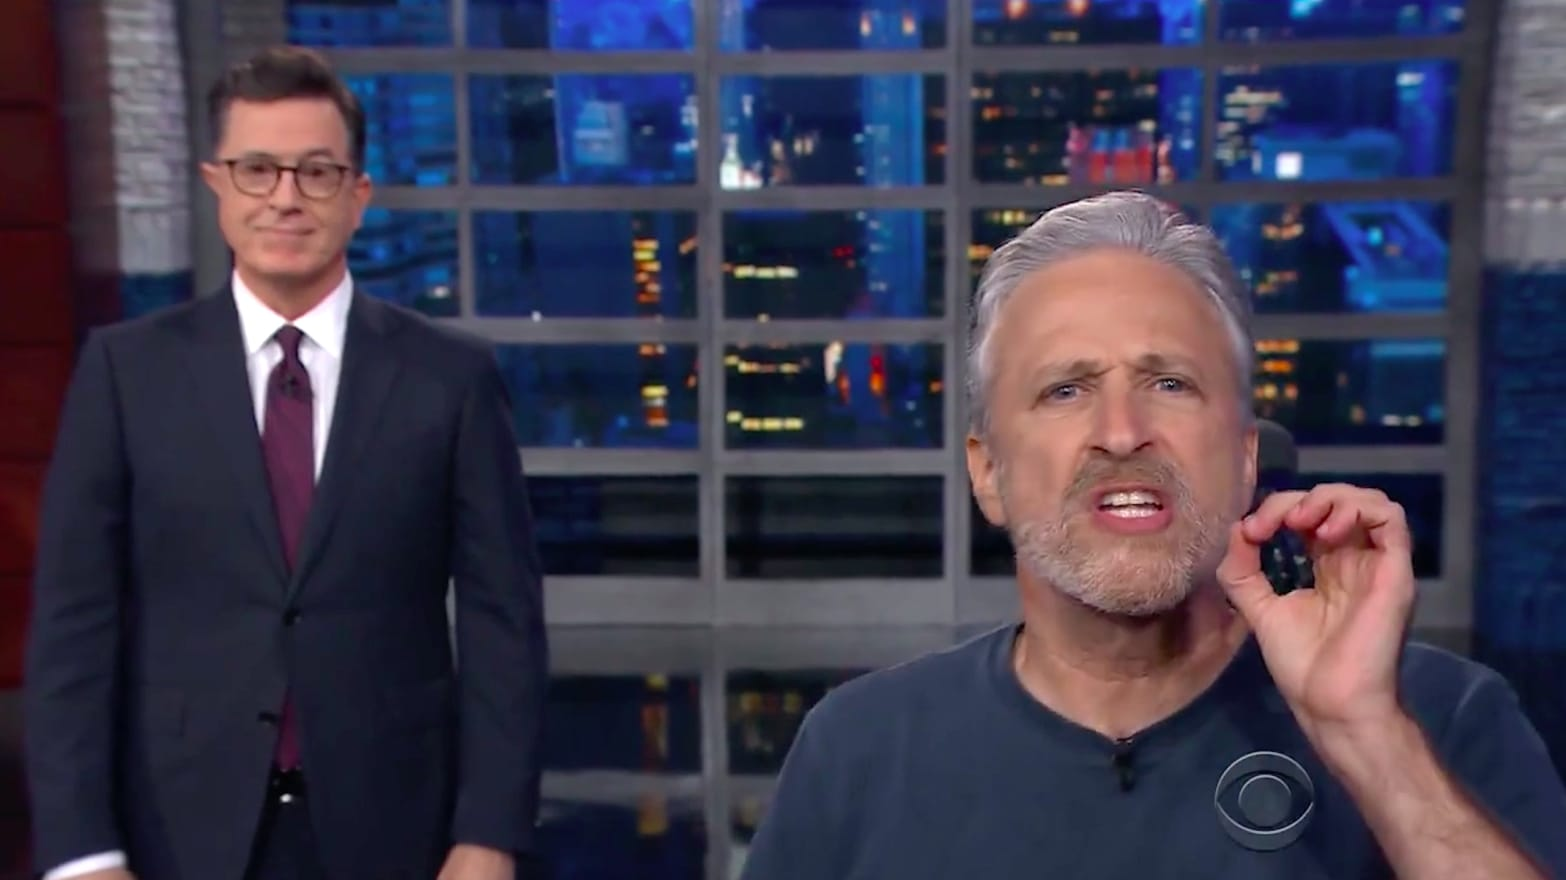 Jon Stewart Unloads on 'Sociopath' Trump: 'What the F*ck Is Wrong with This Guy?'